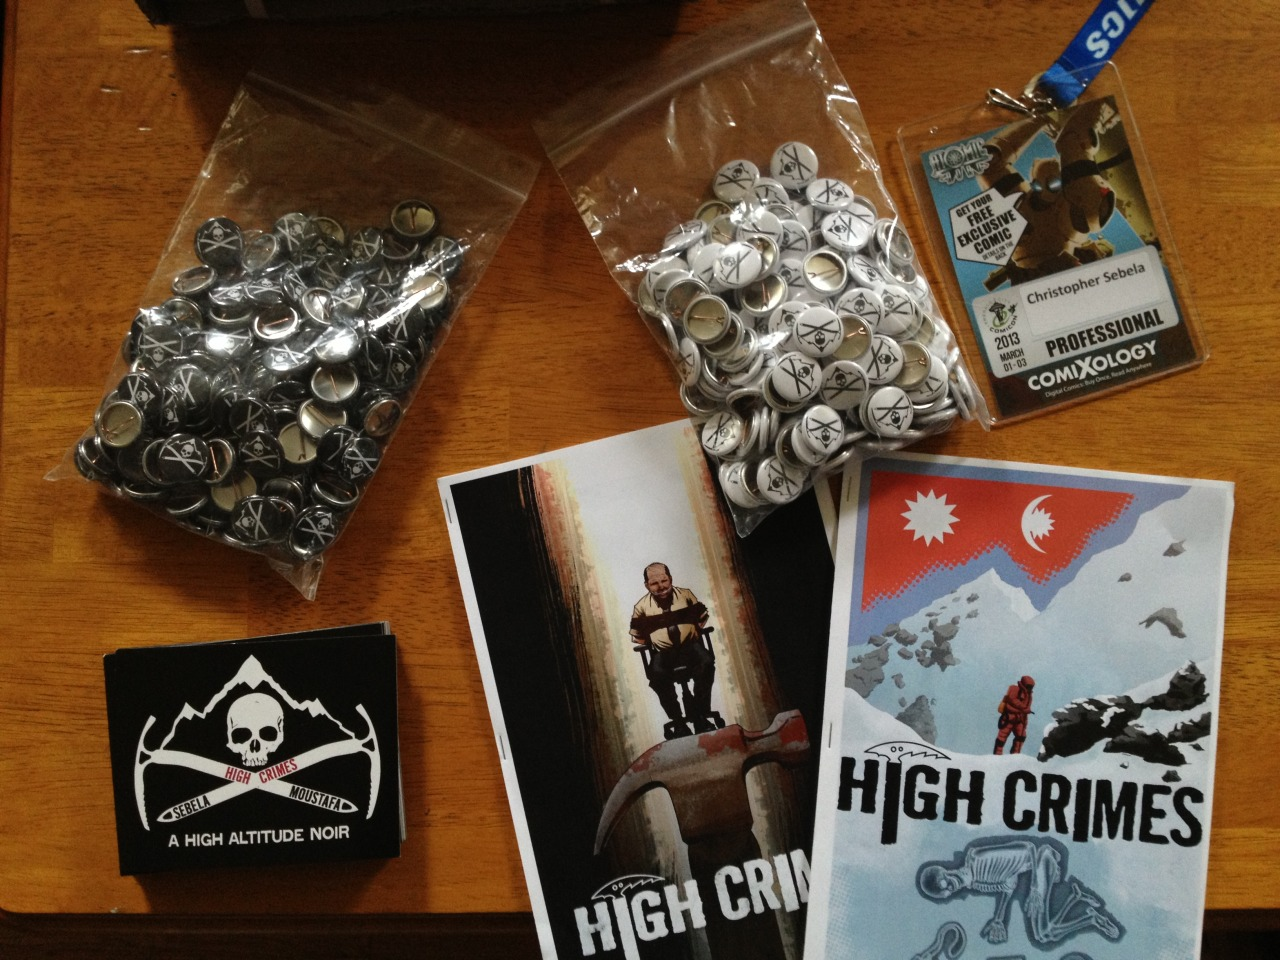 Emerald City Comic Con is upon us and I am soon to enter it with all this in tow for any HIGH CRIMES enthusiasts from today thru Sunday.    Free buttons (in white and black or black and white) and flyers while supplies last. We'll also have a ridiculously limited run of ashcans (not pictured here) and display copies of HIGH CRIMES 1 & 2 (pictured here) on hand.   You can visit Ibrahim at his table: M-05. Or you can track me down wandering the floor. If you want a button/flyer or just to fight me, send me a message on twitter (@xtop) or find me wandering around. I'll be wearing a black hoodie, jeans and a high crimes button where a lapel would be if I dressed like an adult.   Also also, I'll have copies of the SCREAMLAND trade, which I'll be selling for way cheap and a couple issues (7&8) of CAPTAIN MARVEL I'd be happy to sell you for cover price with or without autographs from me and Kelly Sue (if she's not totes swamped at the time).   Otherwise, I am available to be bought drinks and food whenever you feel like it. Come at me bros.